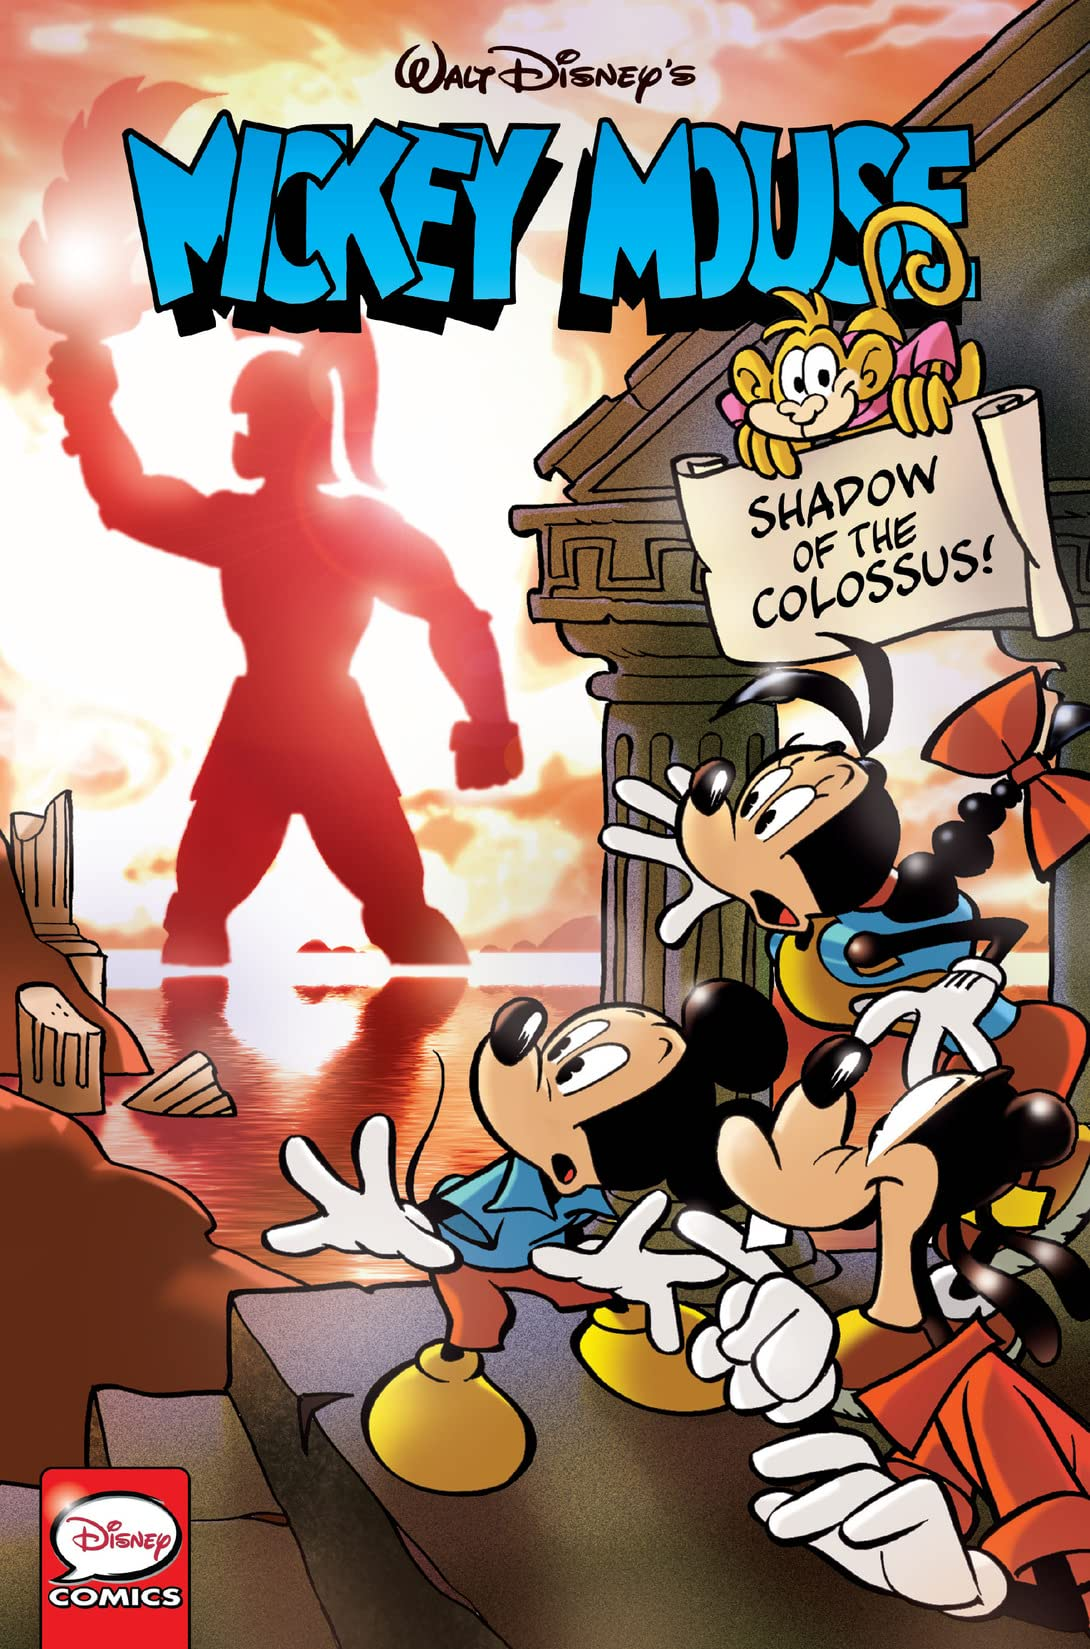 Mickey Mouse Vol. 4: Shadow of The Colossus